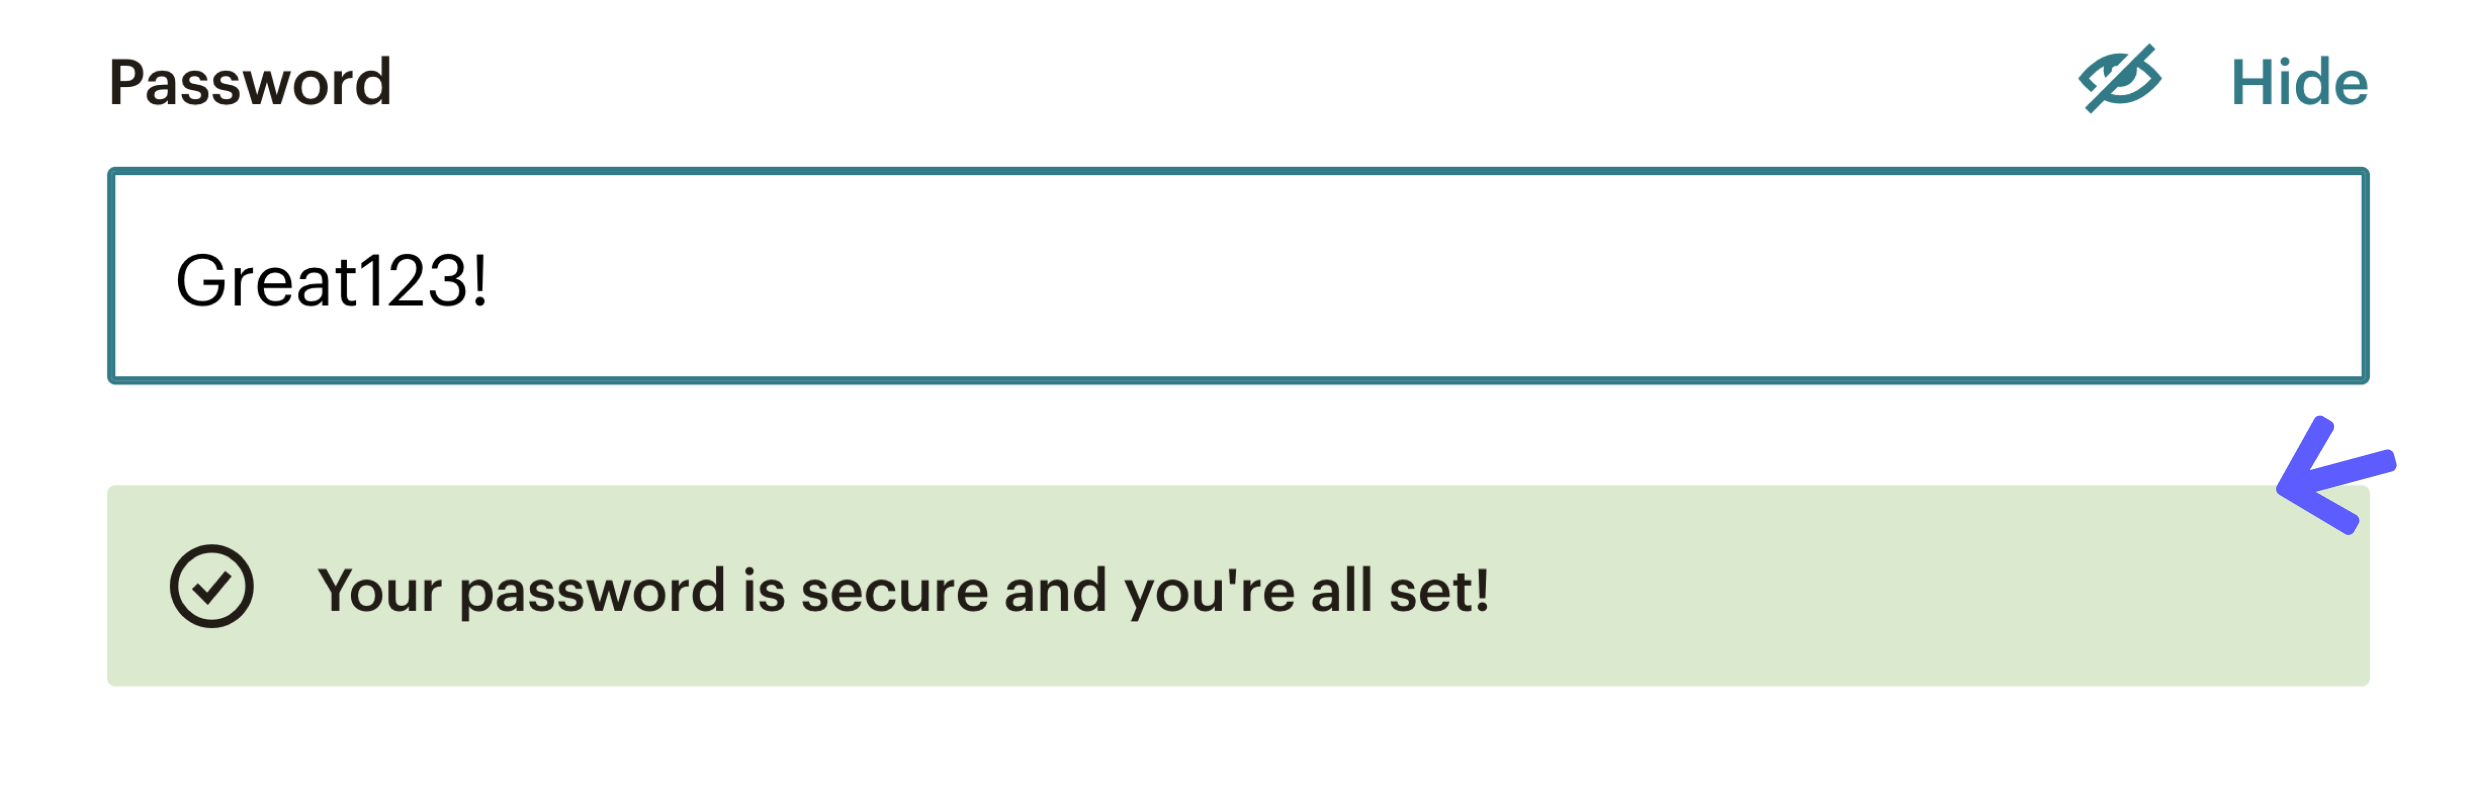 This is an image of a realtime password checker which is an example of good UX. Below the password field is green bar with a checkmark that shows a password creation success message.